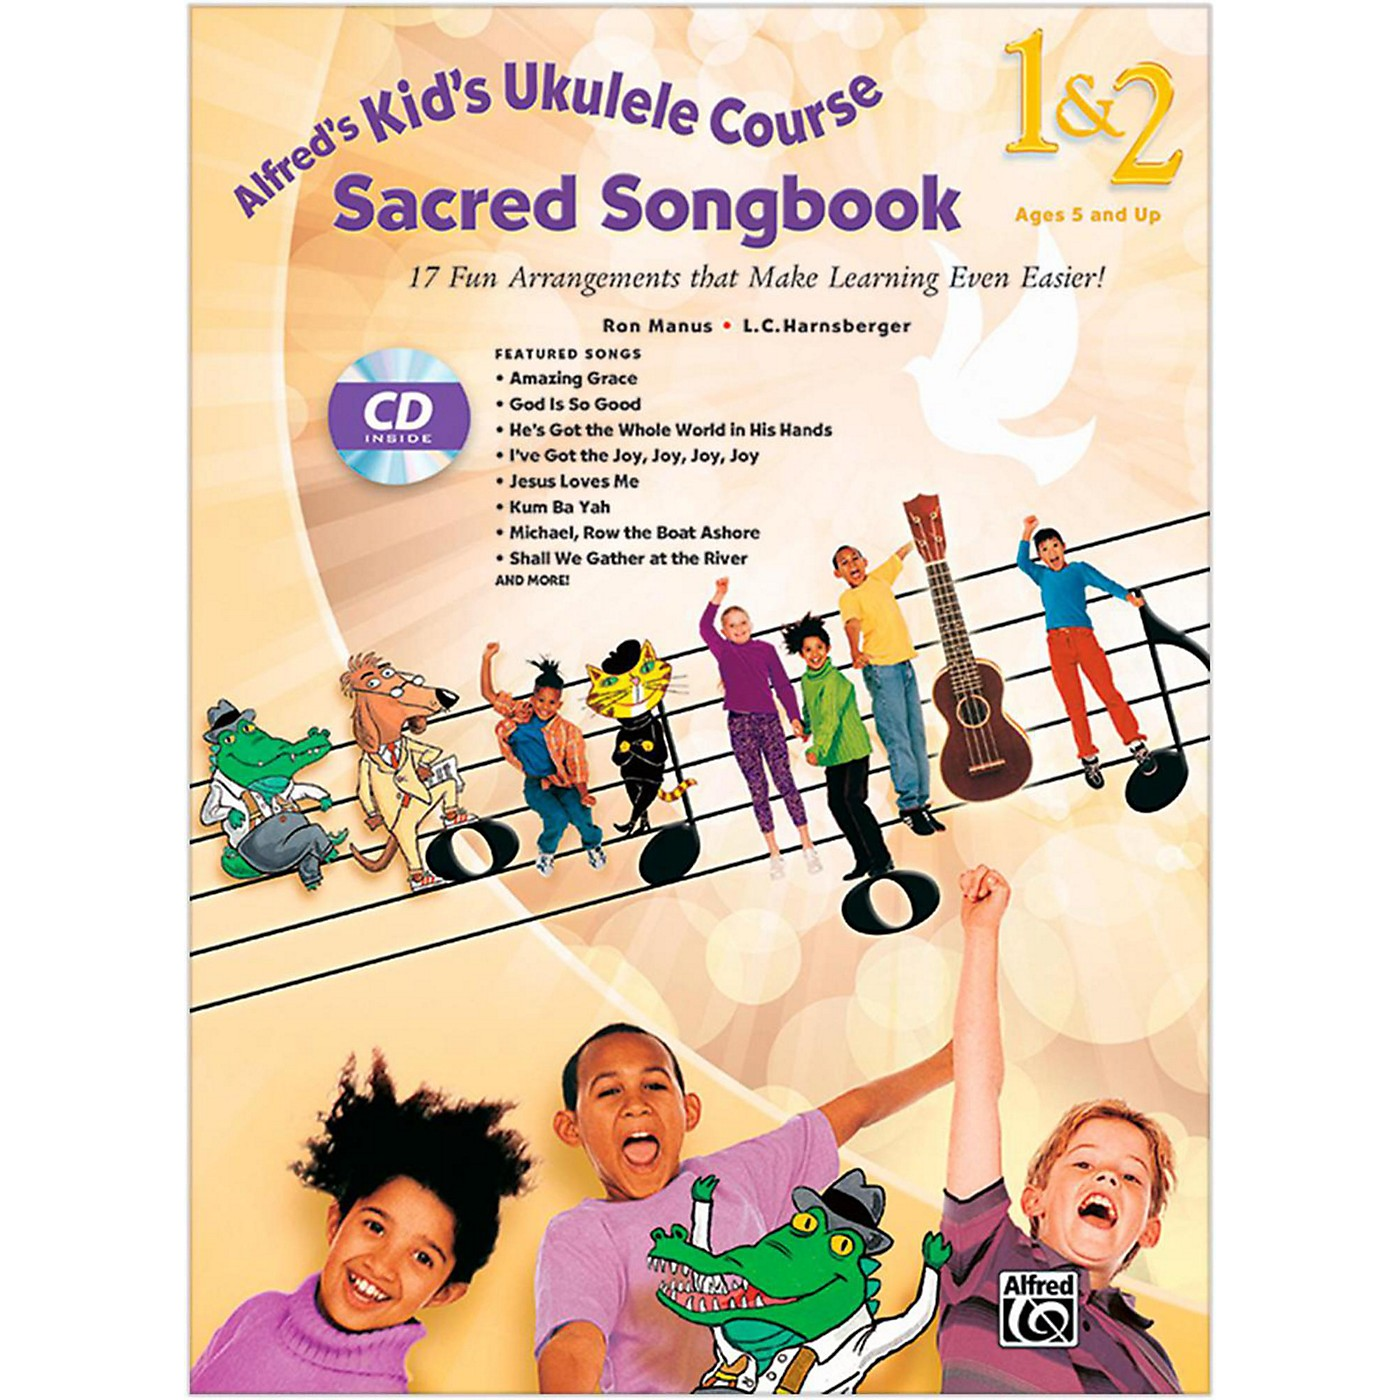 Alfred Alfred's Kid's Ukulele Course Sacred Songbook 1 & 2 Book & CD thumbnail